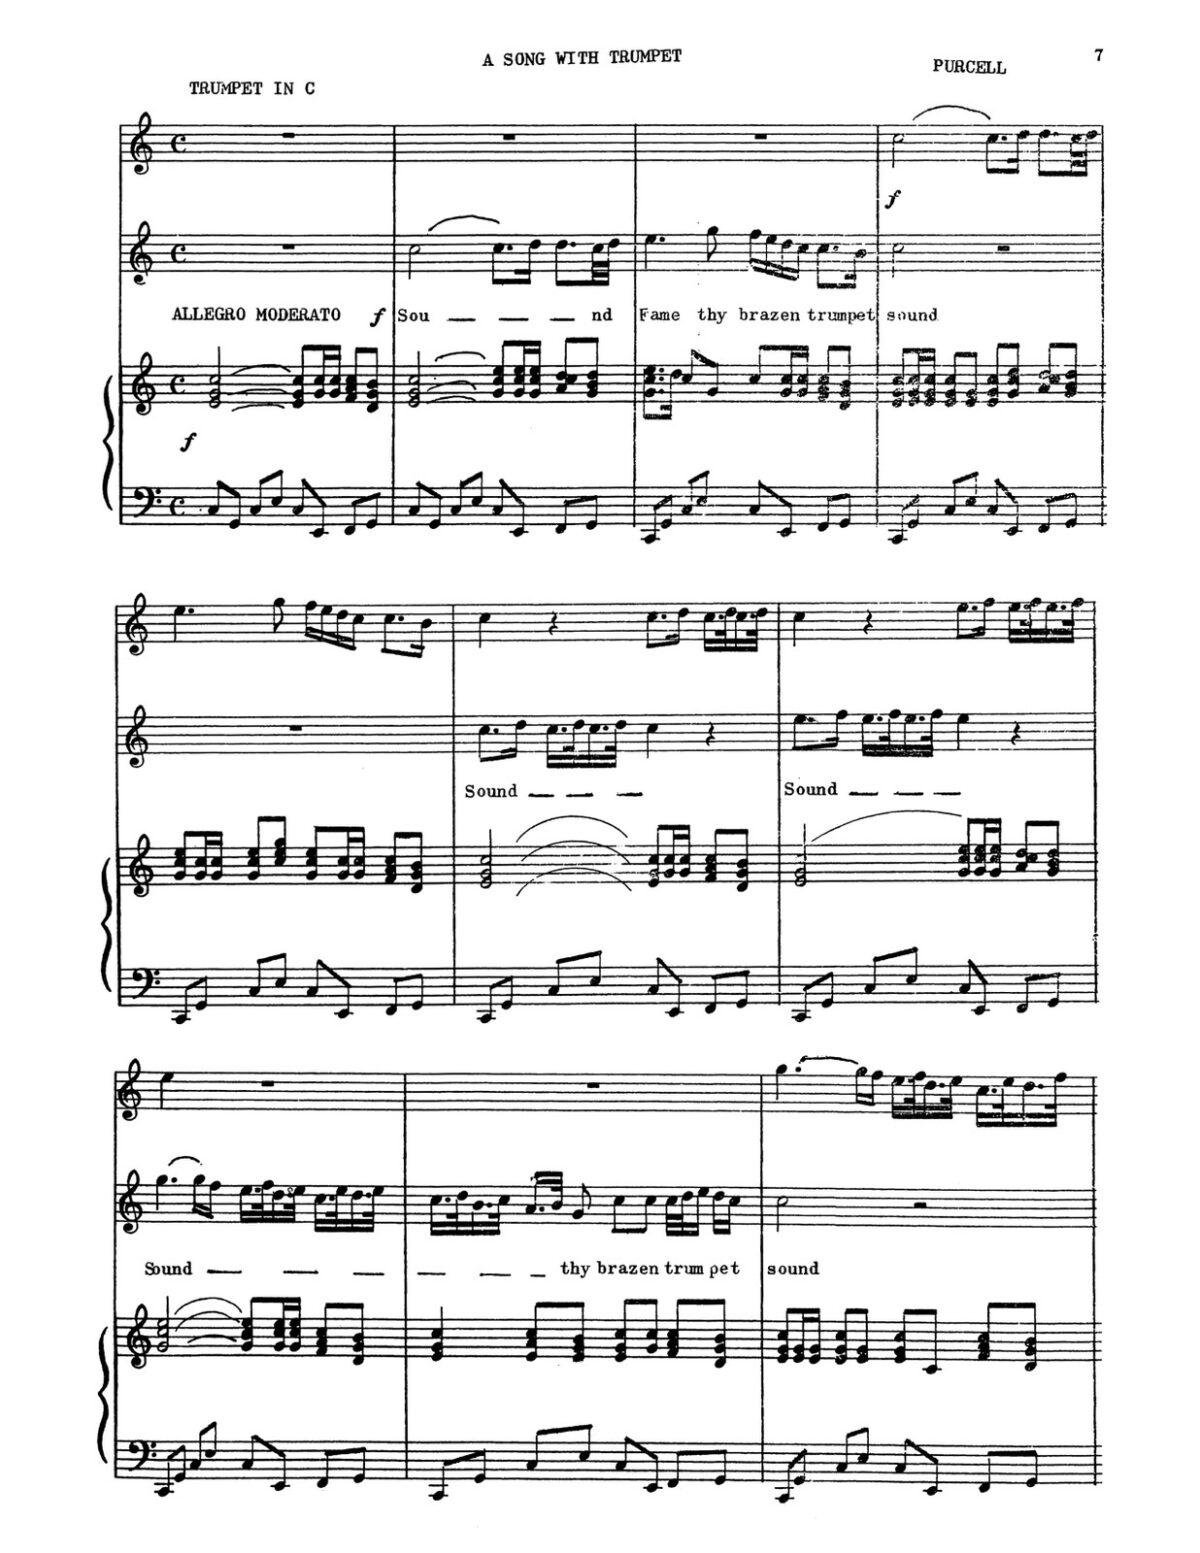 Purcell, Two Songs for High Voice and Trumpet-p13